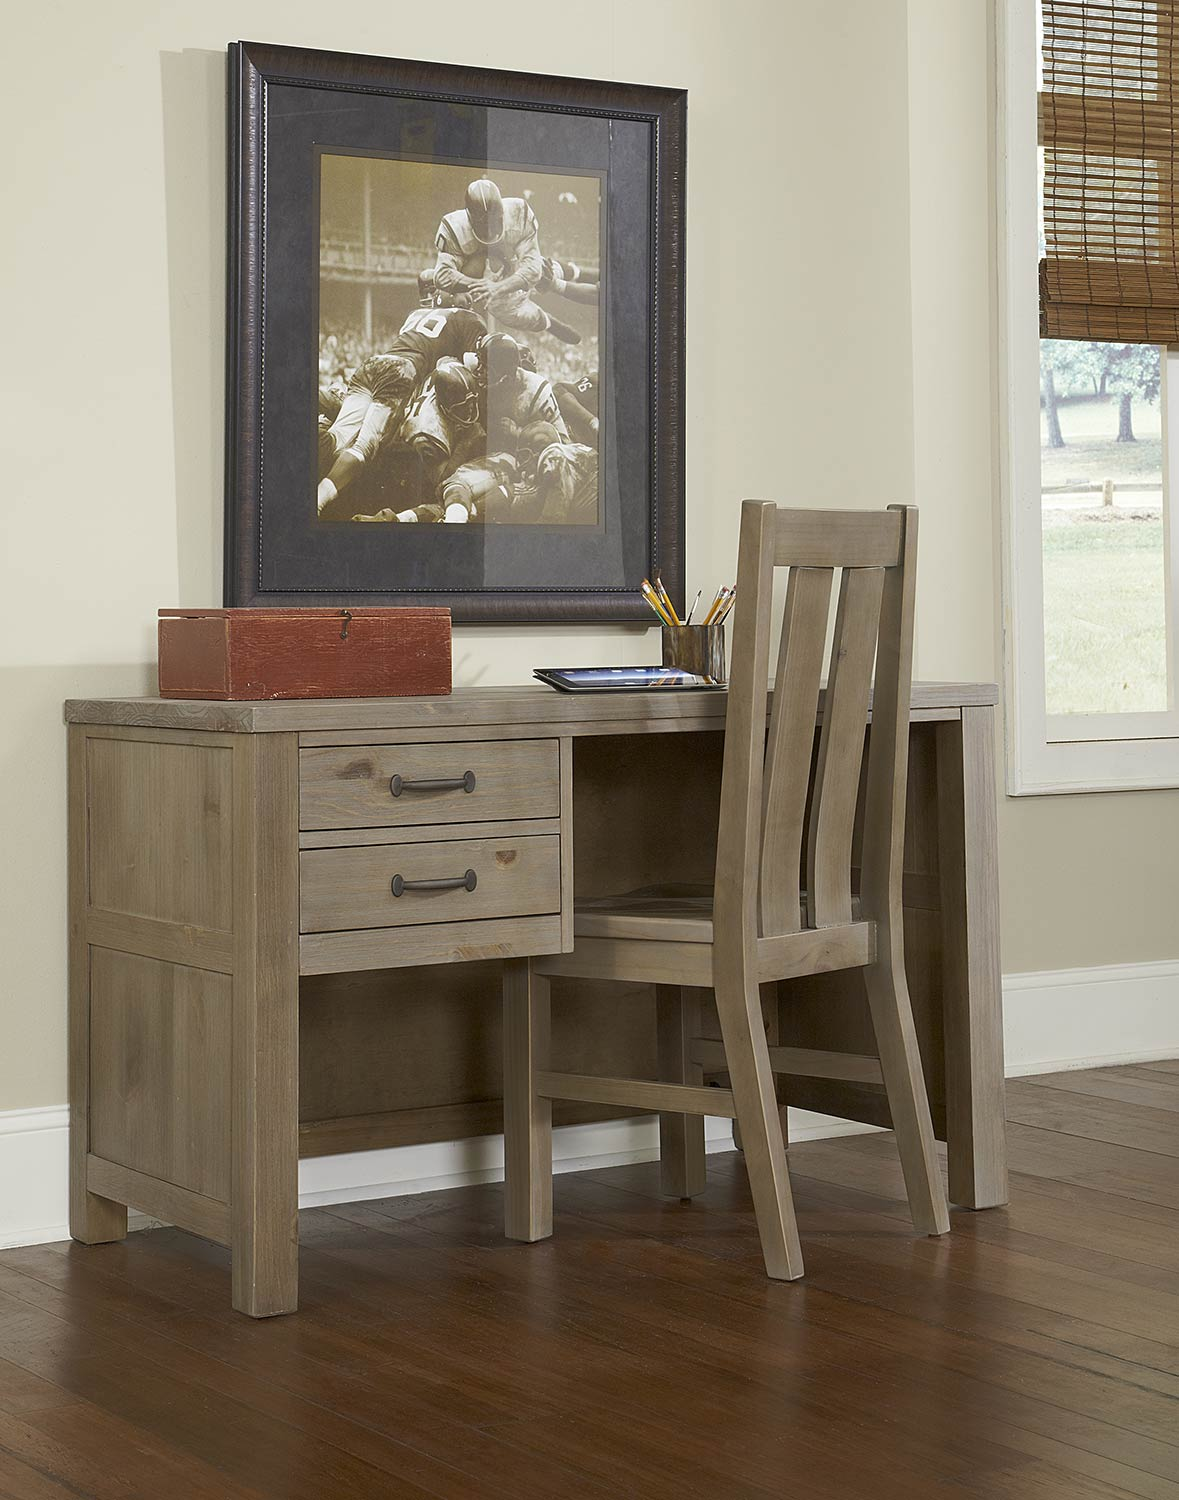 NE Kids Highlands Desk with Chair - Driftwood